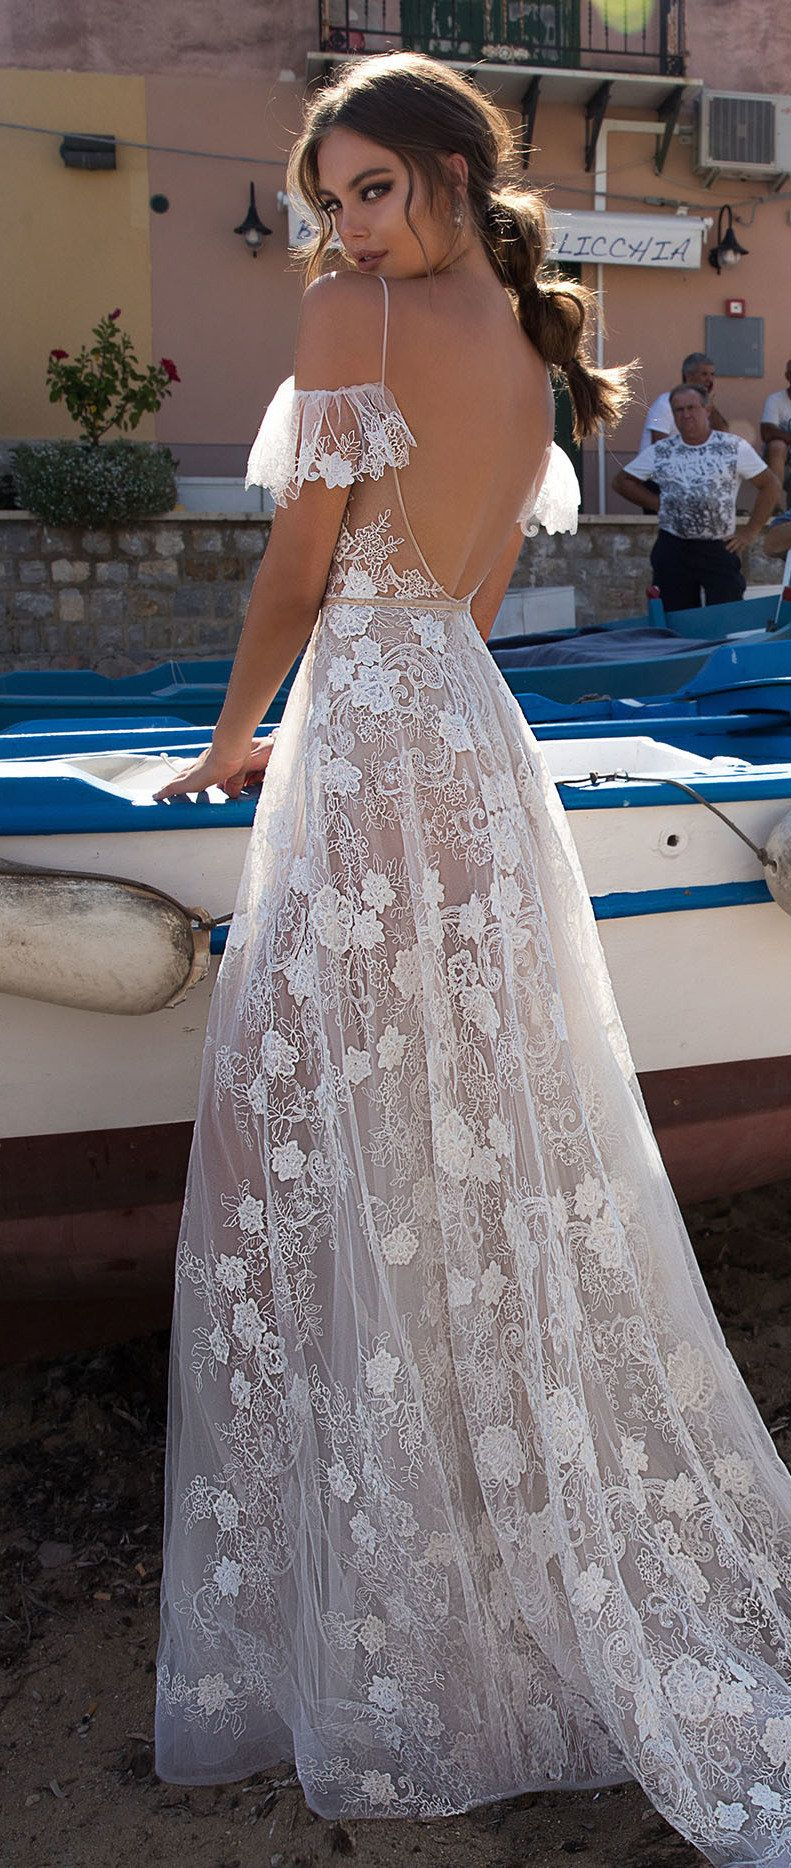 Muse by berta sicily wedding dress collection dress for Where to buy berta wedding dresses